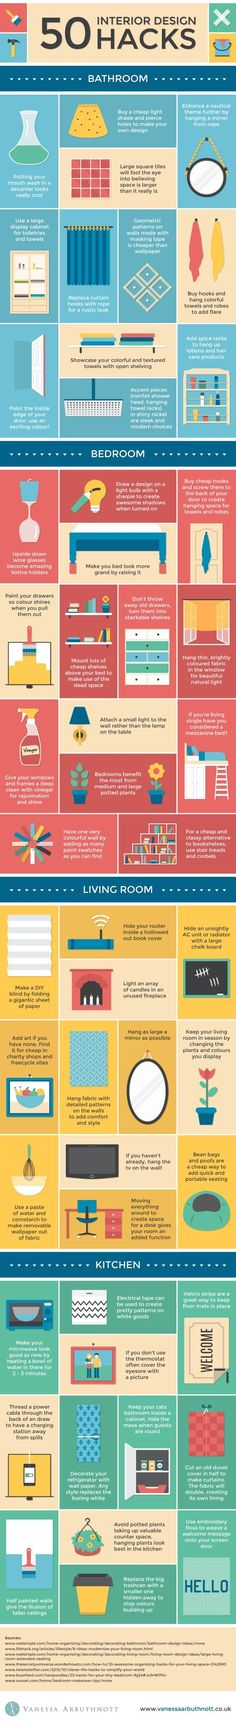 Tips & tricks - Home decorating ideas - 50 Interior Design decorating tips & hacks in an infographic Home Decor Hacks, Diy Home Decor, Decor Ideas, Decor Room, Room Ideas, Fun Ideas, Creative Ideas, Life Hacks, Interior Design Tips